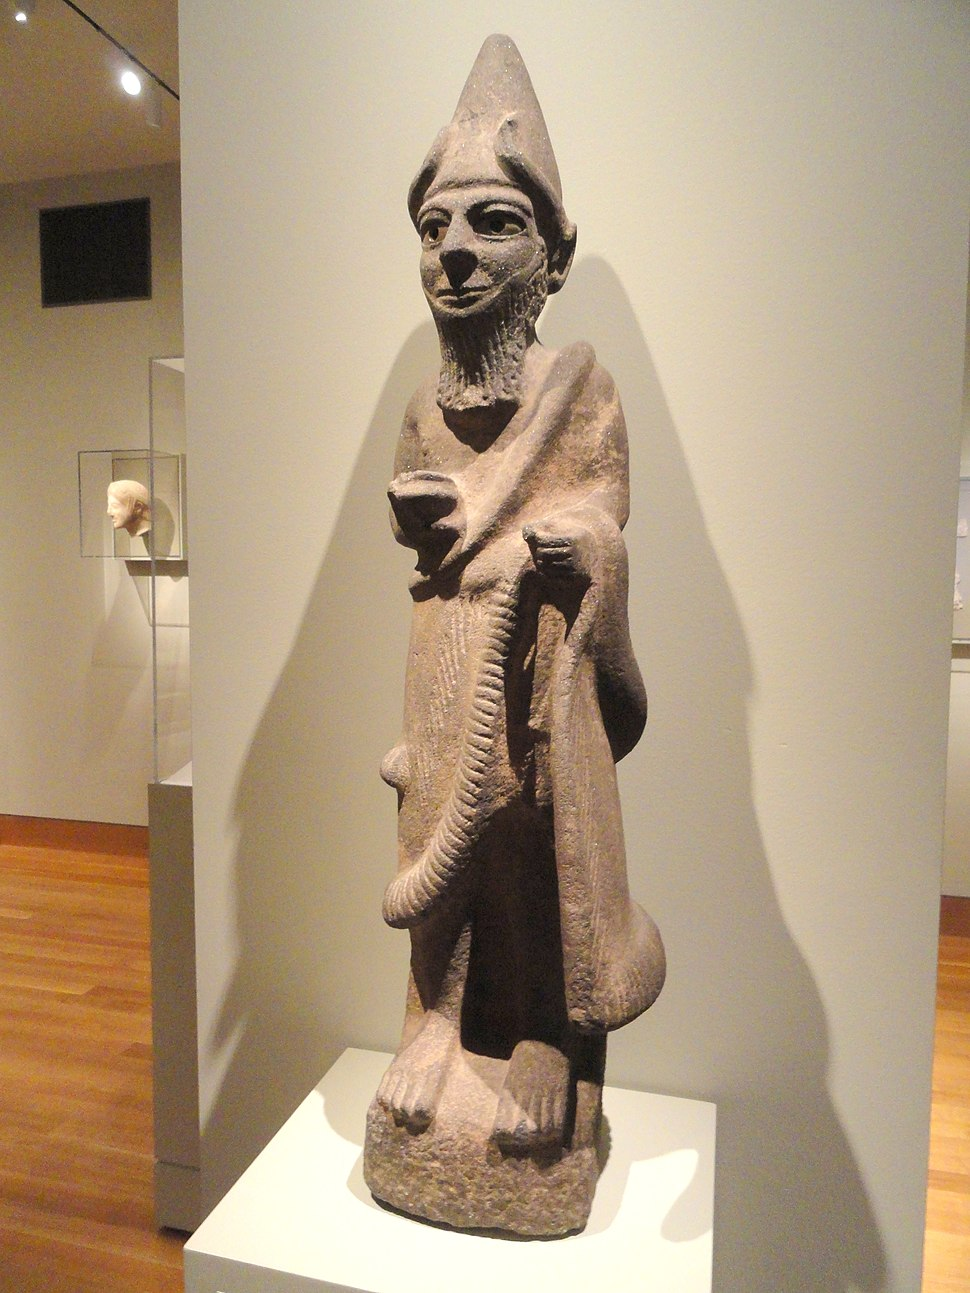 Priest-King or Diety, about 1600 BC, Hittite, North Syria, basalt with bone eyes - Cleveland Museum of Art - DSC08114